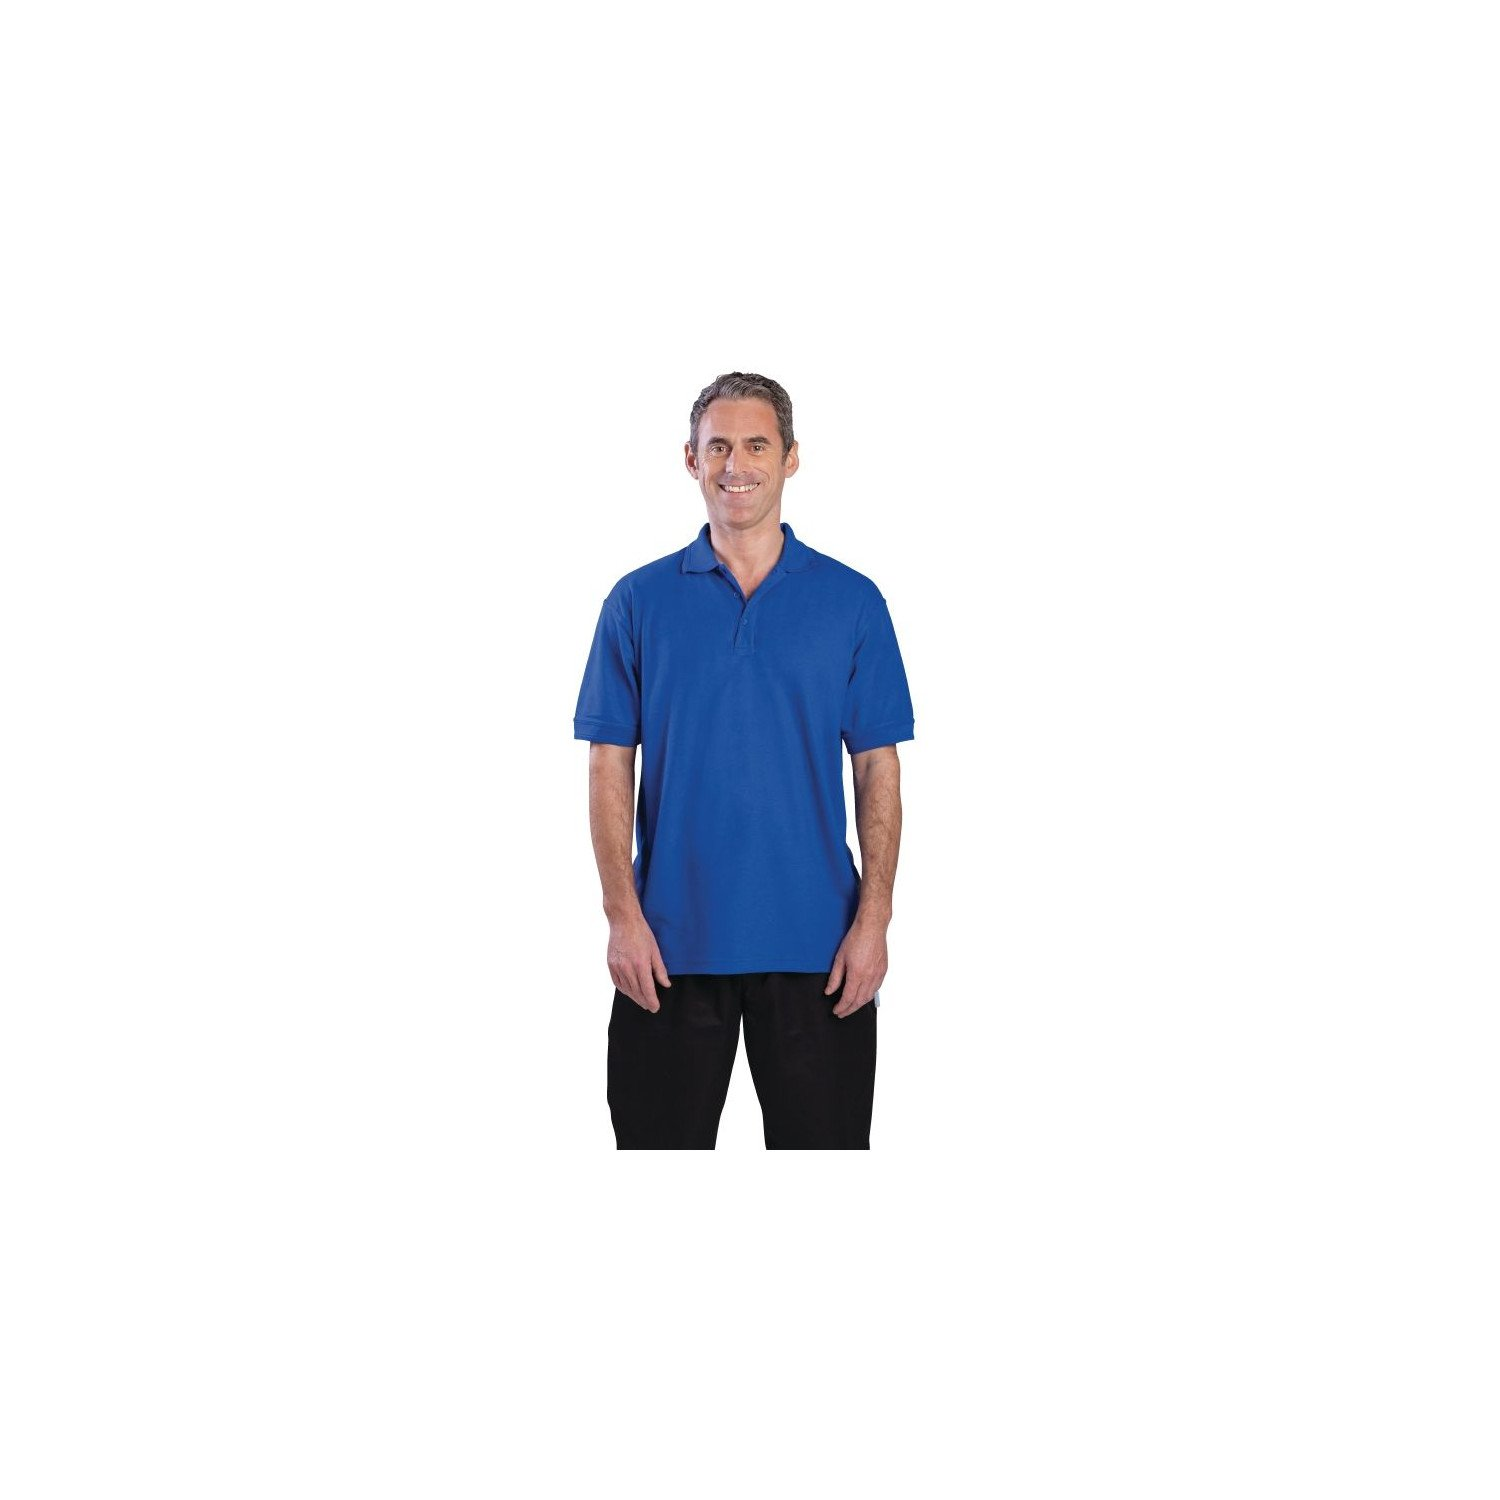 Polo 65% polyester & 35% coton bleu roi L EQUIPEMENT DIRECT Nisbets Vêtements